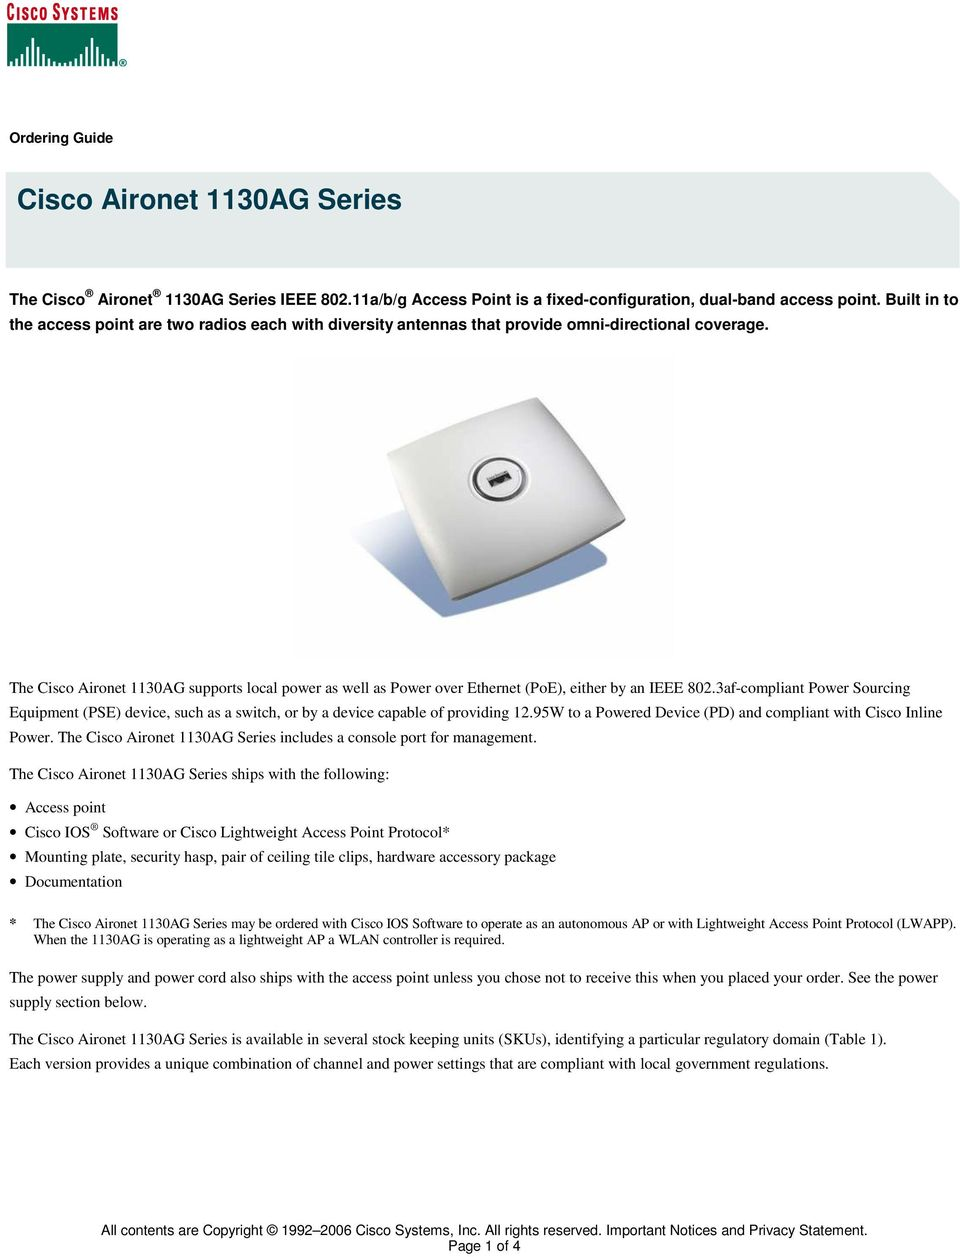 The Cisco Aironet 1130AG supports local power as well as Power over Ethernet (PoE), either by an IEEE 802.